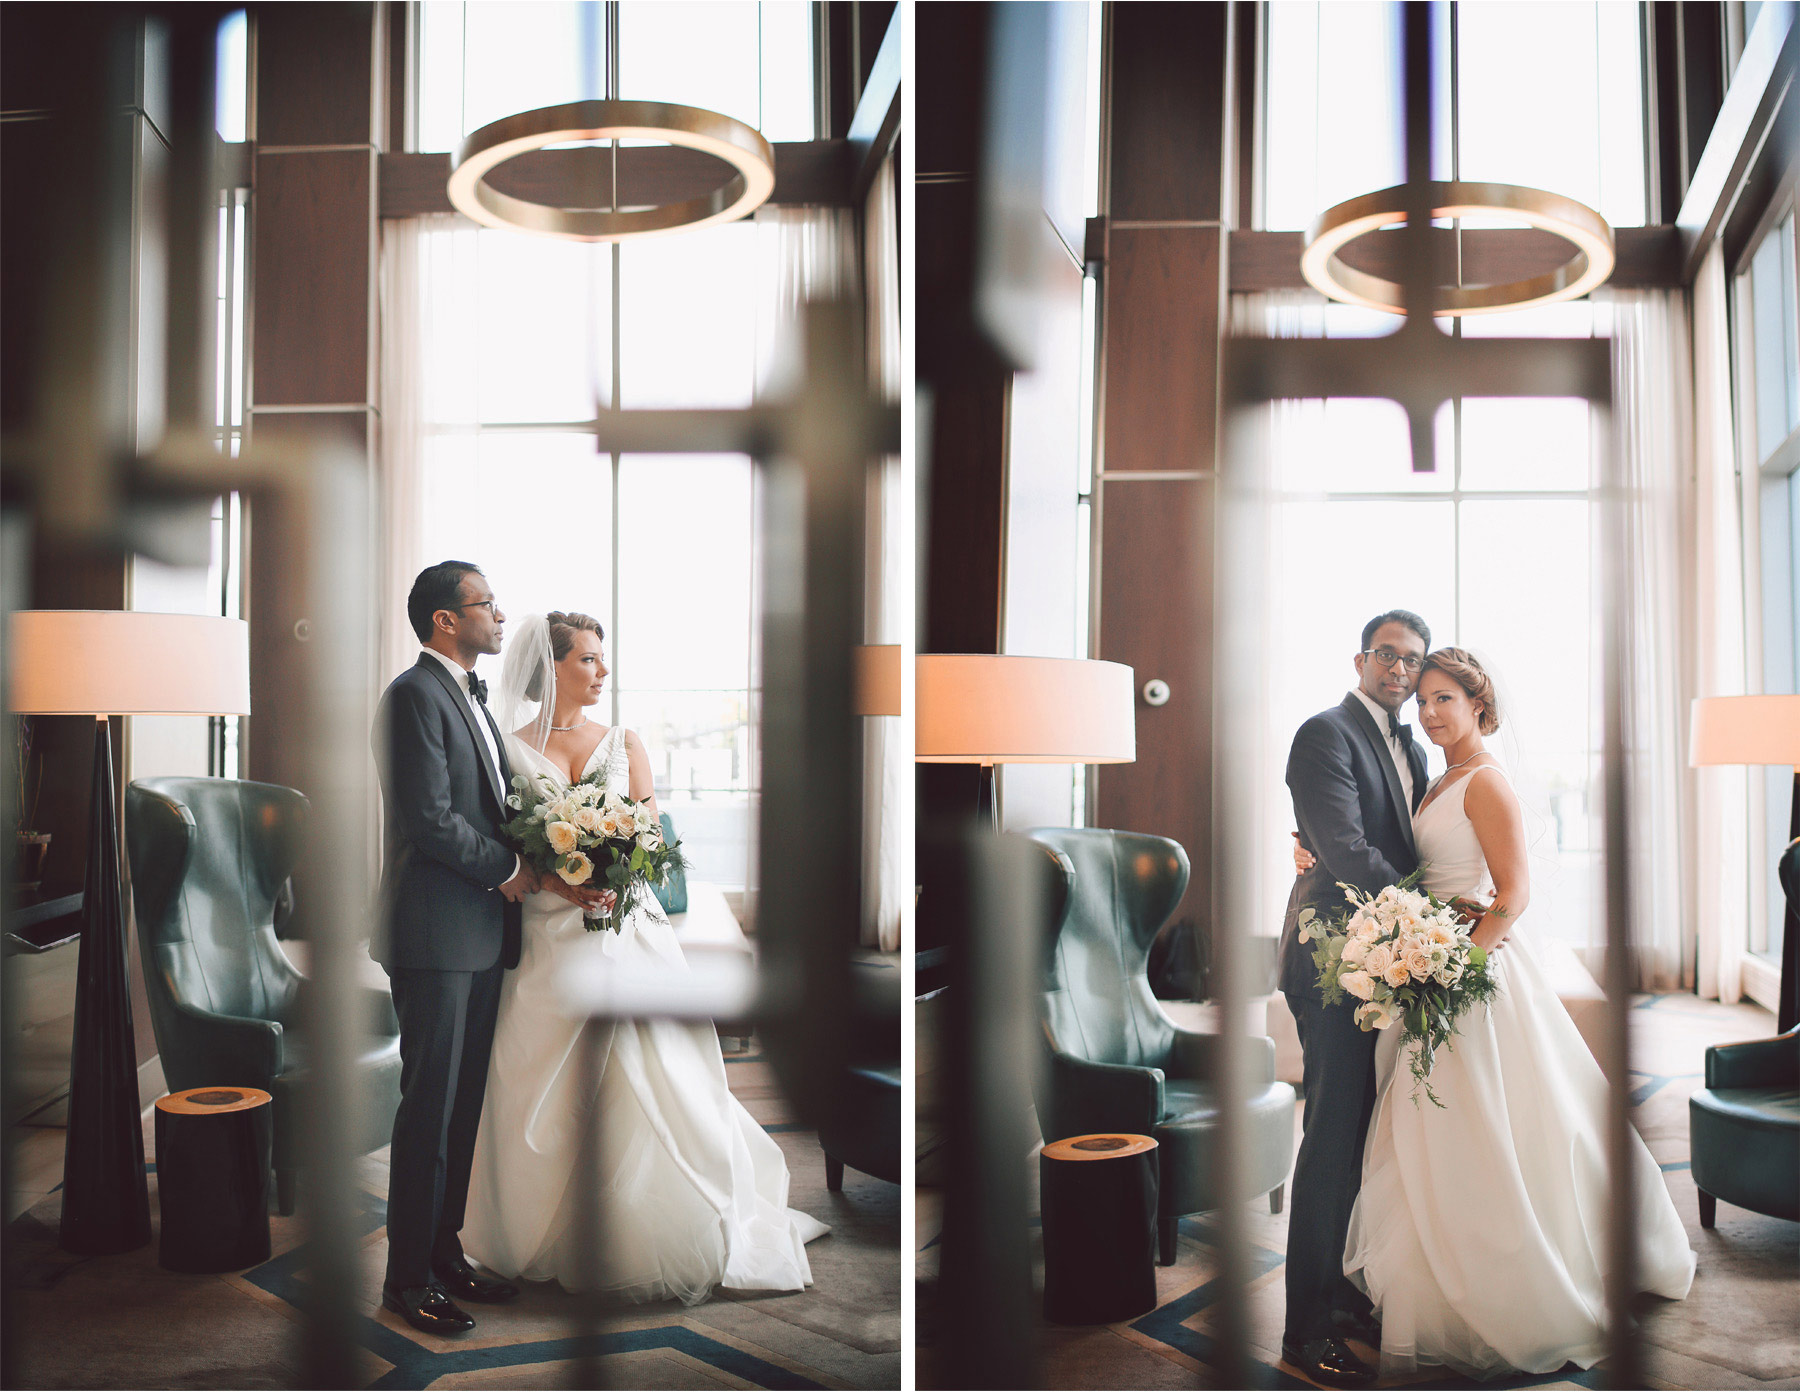 08-Bloomington-Minneapolis-Minnesota-Wedding-Photographer-by-Andrew-Vick-Photography-JW-Marriott-Mall-of-America-MOA-Spring-First-Meeting-Look-Bride-Groom-Hotel-Embrace-Vintage-Rachel-and-Venu.jpg